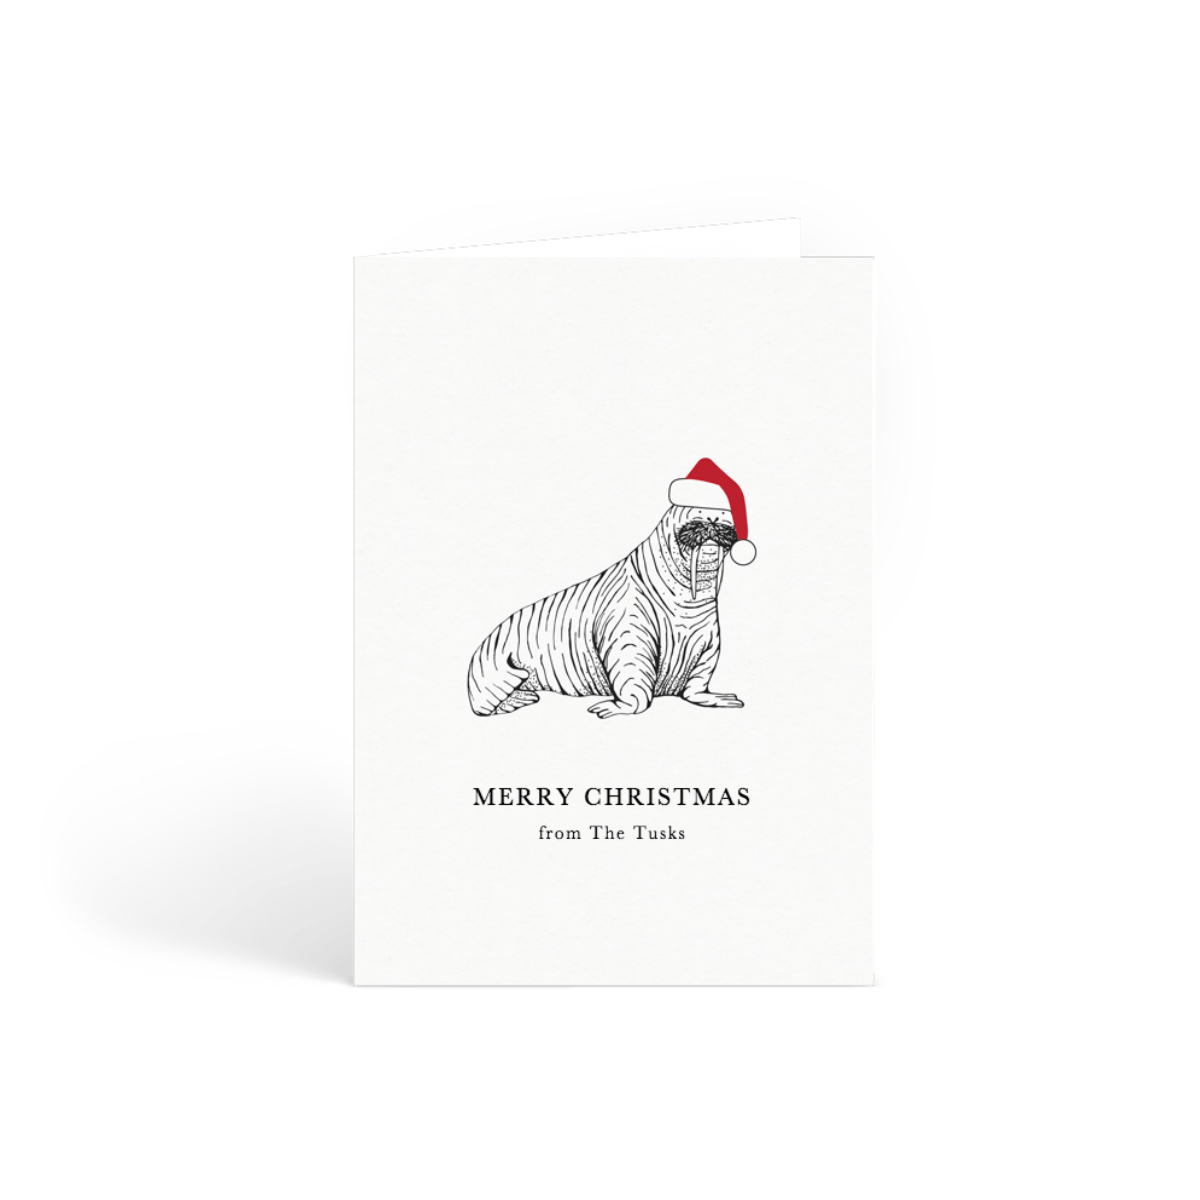 Https%3a%2f%2fwww.papier.com%2fproduct image%2f12490%2f2%2fchristmas walrus 3145 front 1570628425.png?ixlib=rb 1.1